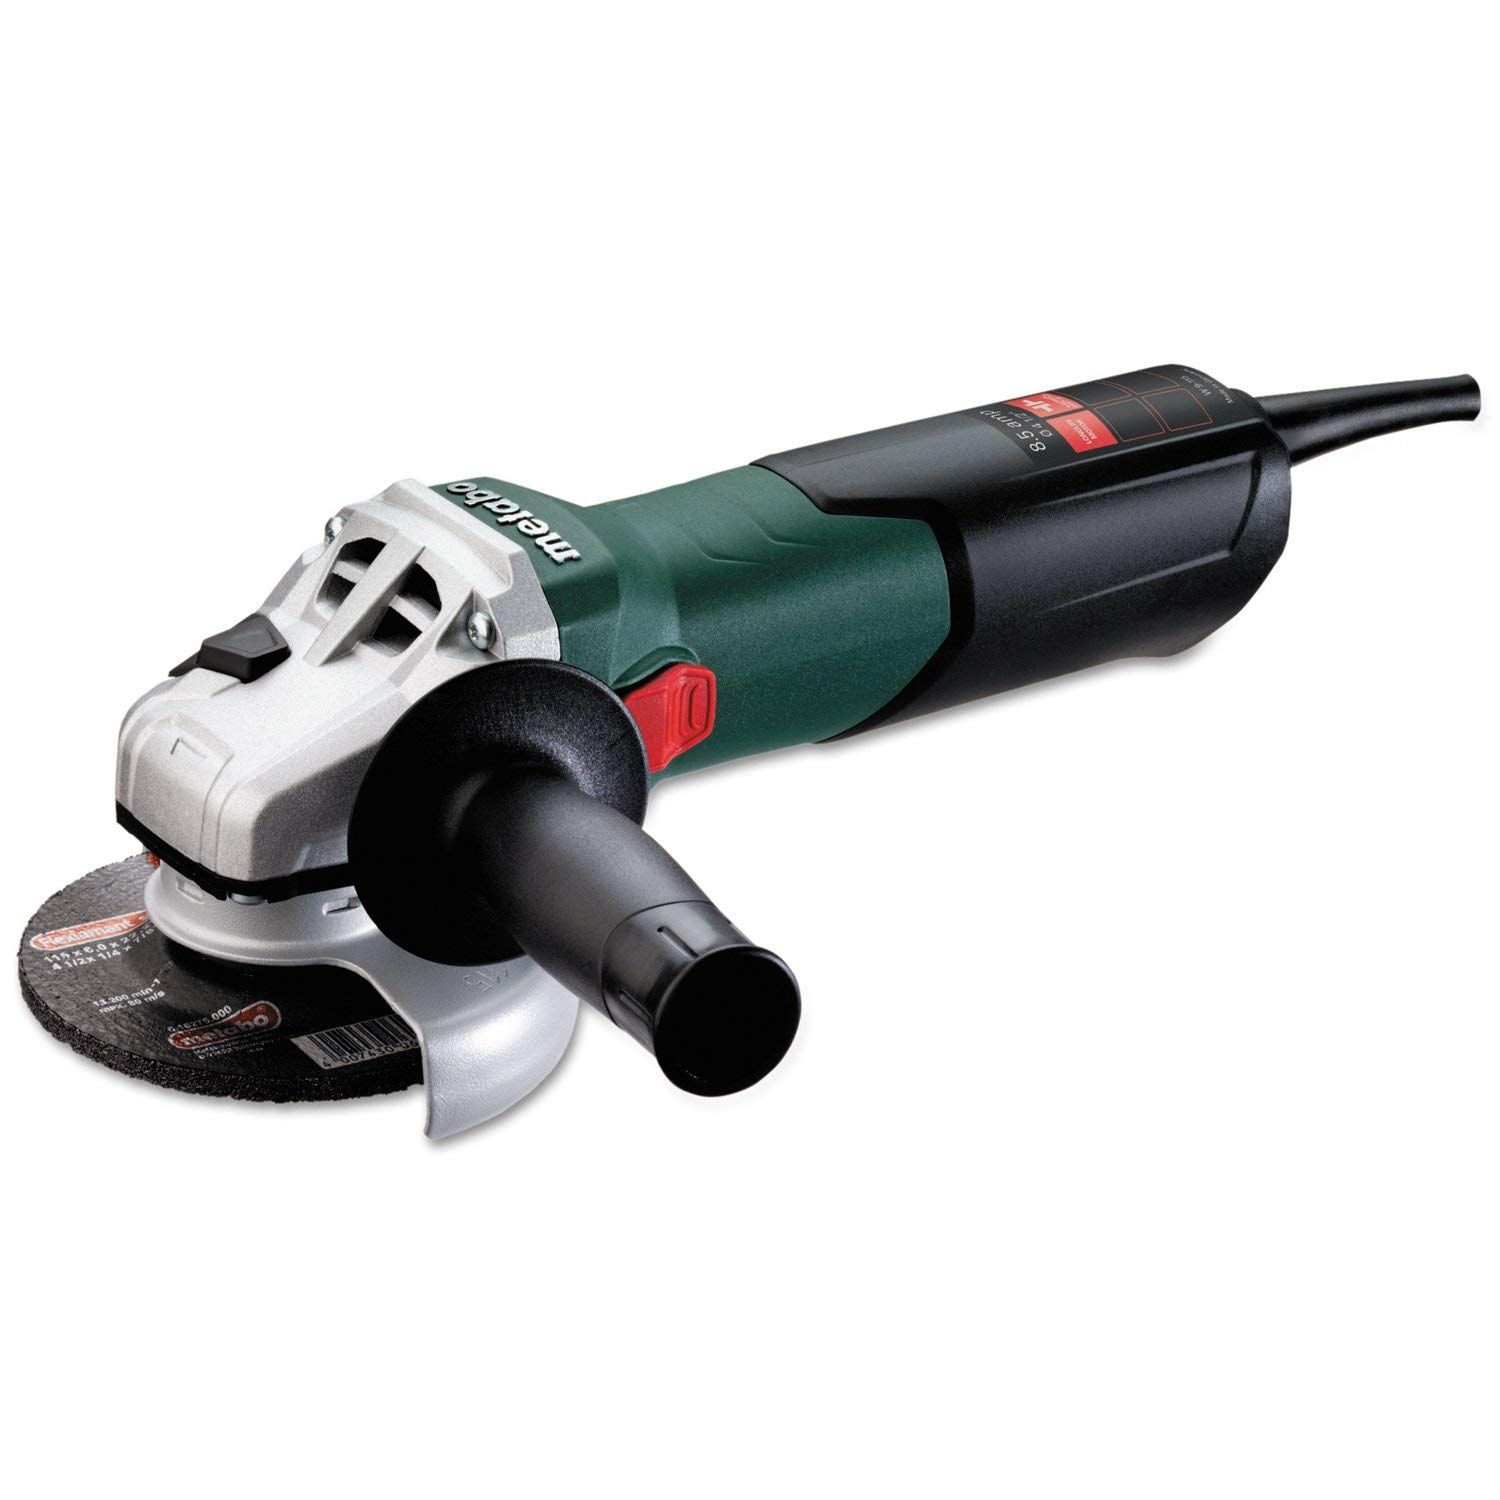 Metabo W9 115 8 5 Amp 10 500 Rpm Angle Grinder With Lock On Sliding Switch 4 1 2 You Can Get More Details By Clicking On The Angle Grinder Tools Grinder